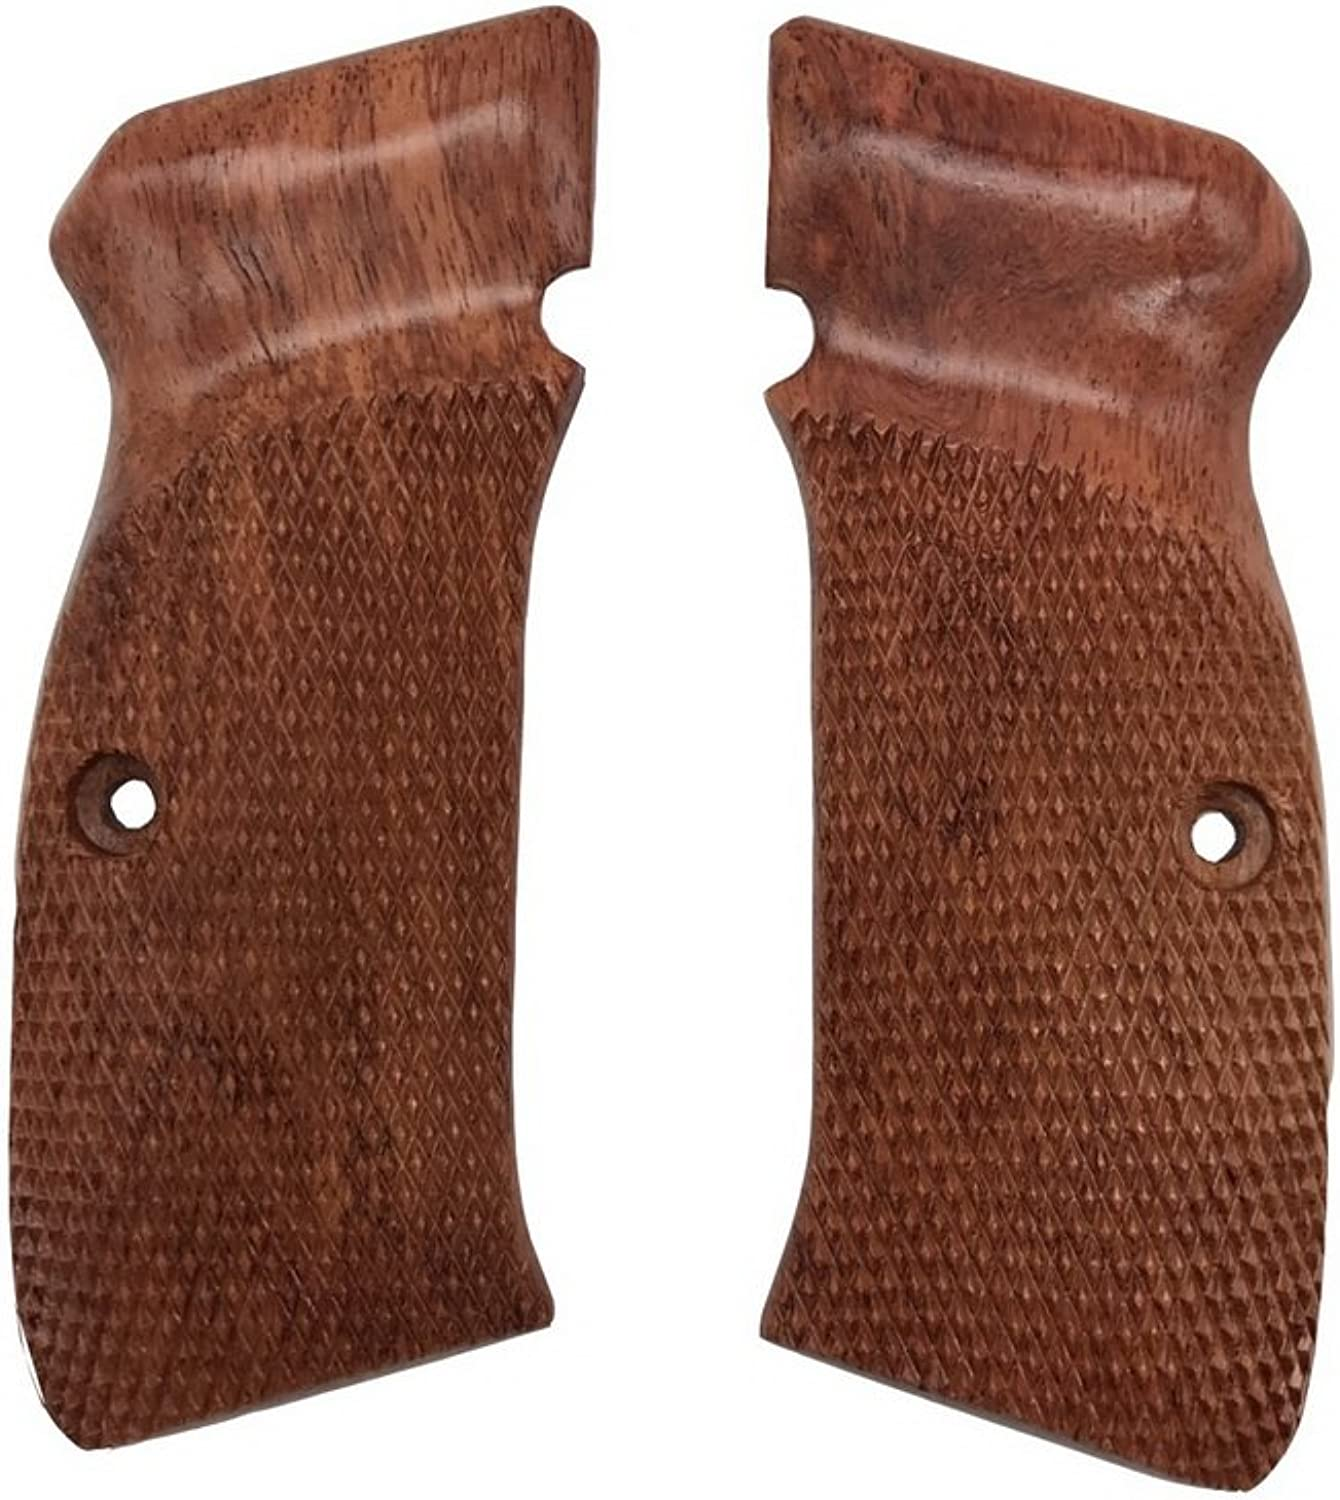 Handicraftgrips Cfw19   New Grips Cz75 Cz85 CZ SP-01 CZ 75B 75BD CZ75B 75 B Grips Full Size Hard Wood Hardwood Checkered Handmade Beautiful Handcraft Sport for Men Birthday Gift